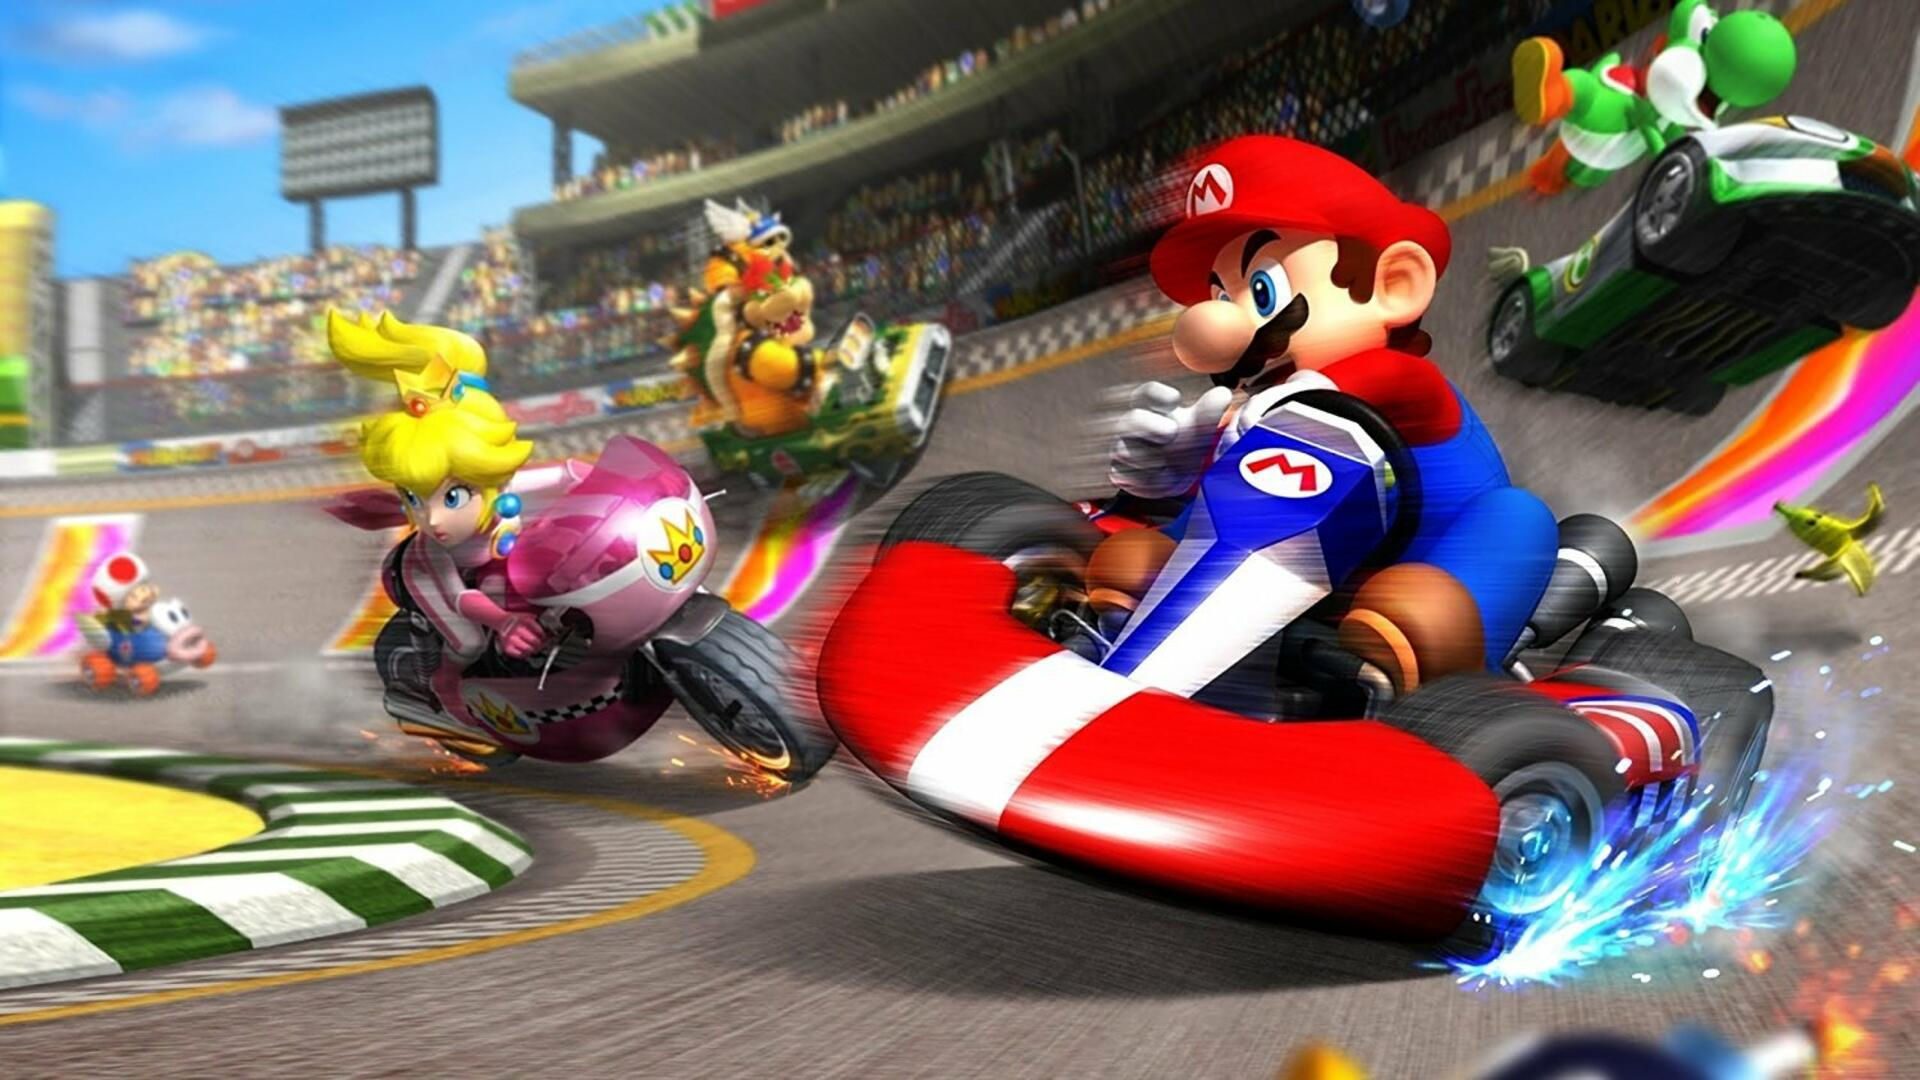 Mario Kart Tour Beta Impressions are Out, and It Looks Like It Has Some Heavy Microtransactions